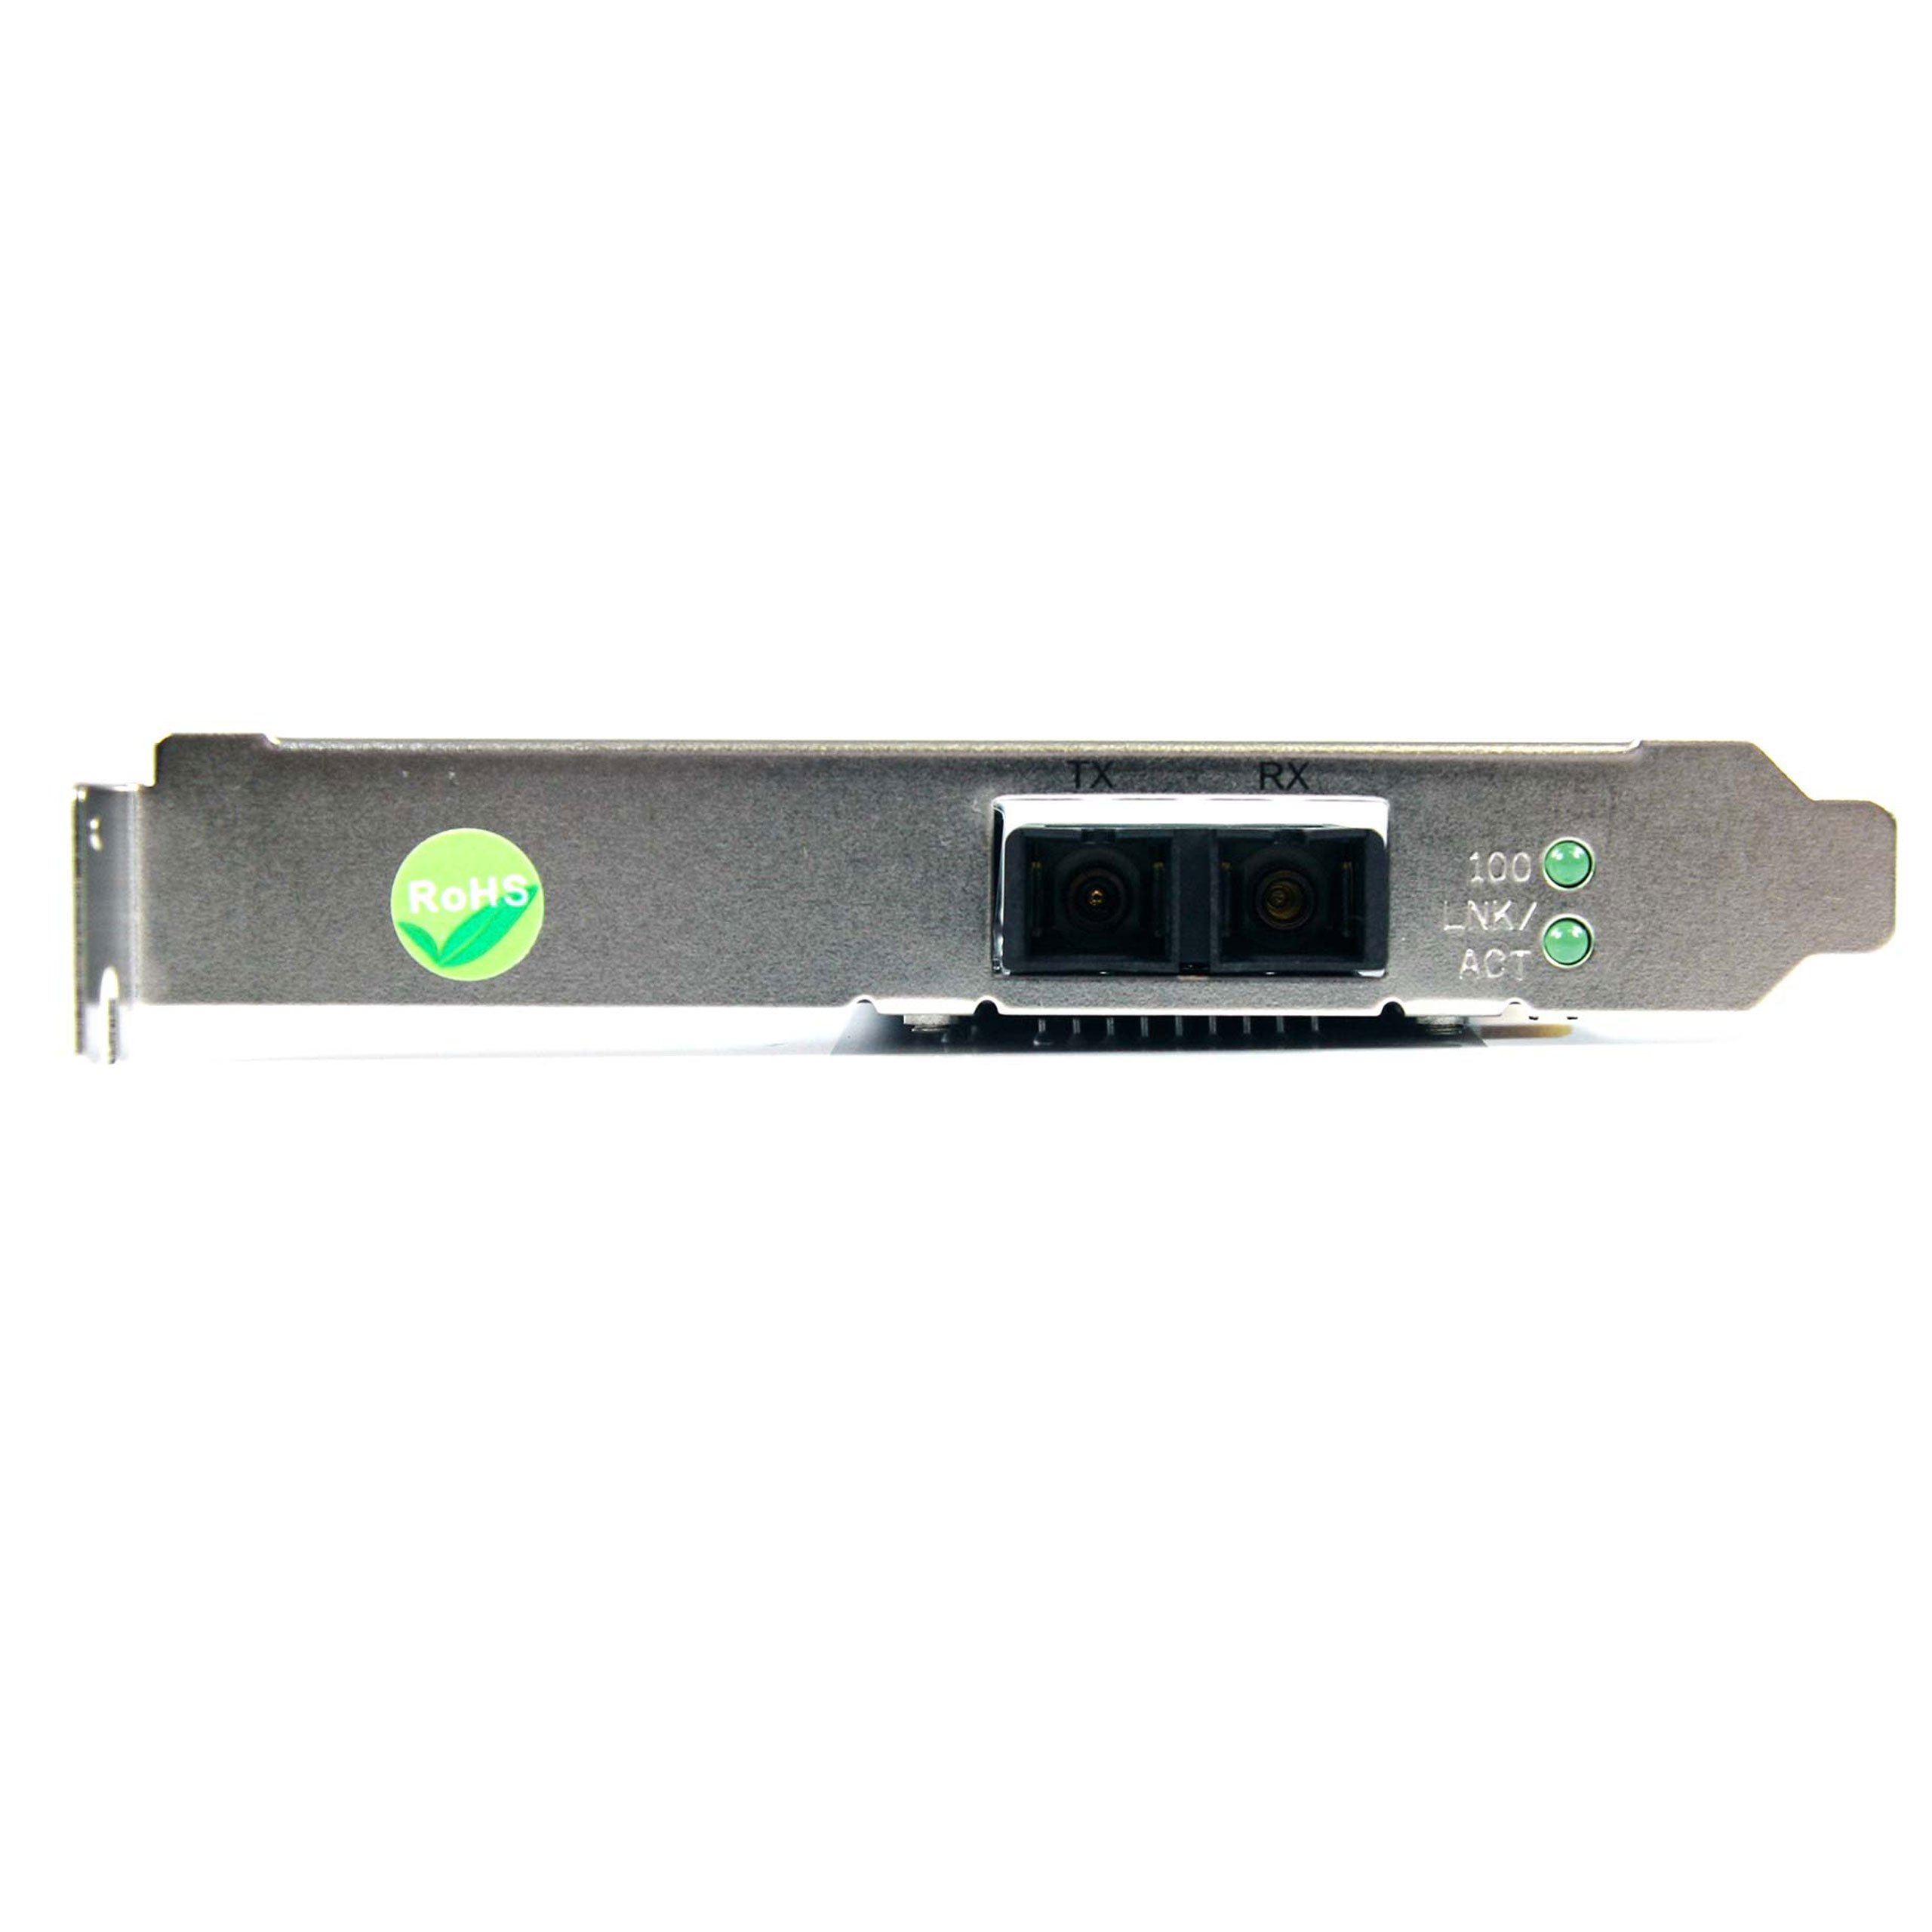 StarTech.com 100Mbps Full/Low Profile Ethernet Multi Mode SC Fiber PCI NIC Card - 2 KM (PCI100MMSC) by StarTech (Image #3)